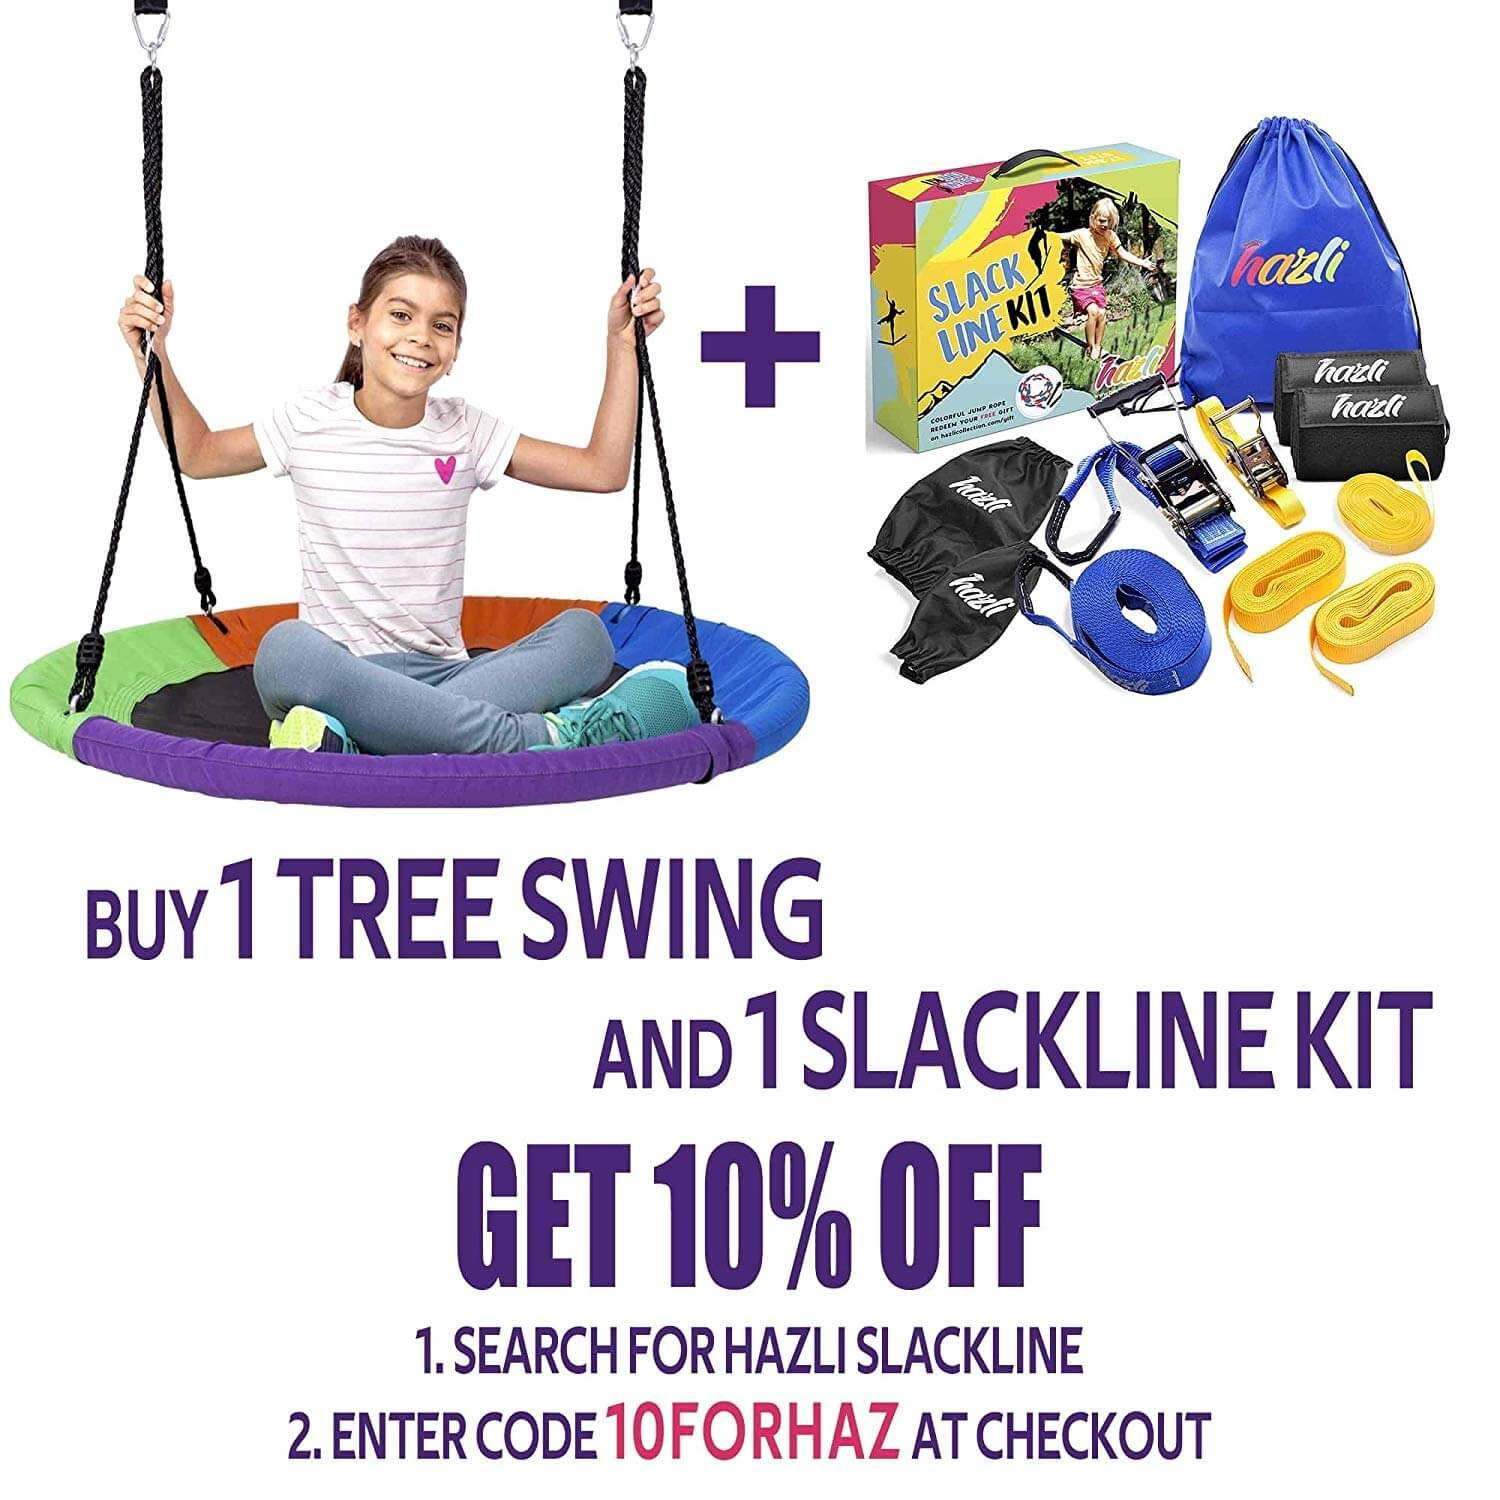 Outdoor Round Tree Swing for Kids - 40'' Saucer Tree Swing for Kids-Large Tree Swings for Children - 400 lbs Tree Swings for Outside with Hanging Kit by Hazli (Image #2)